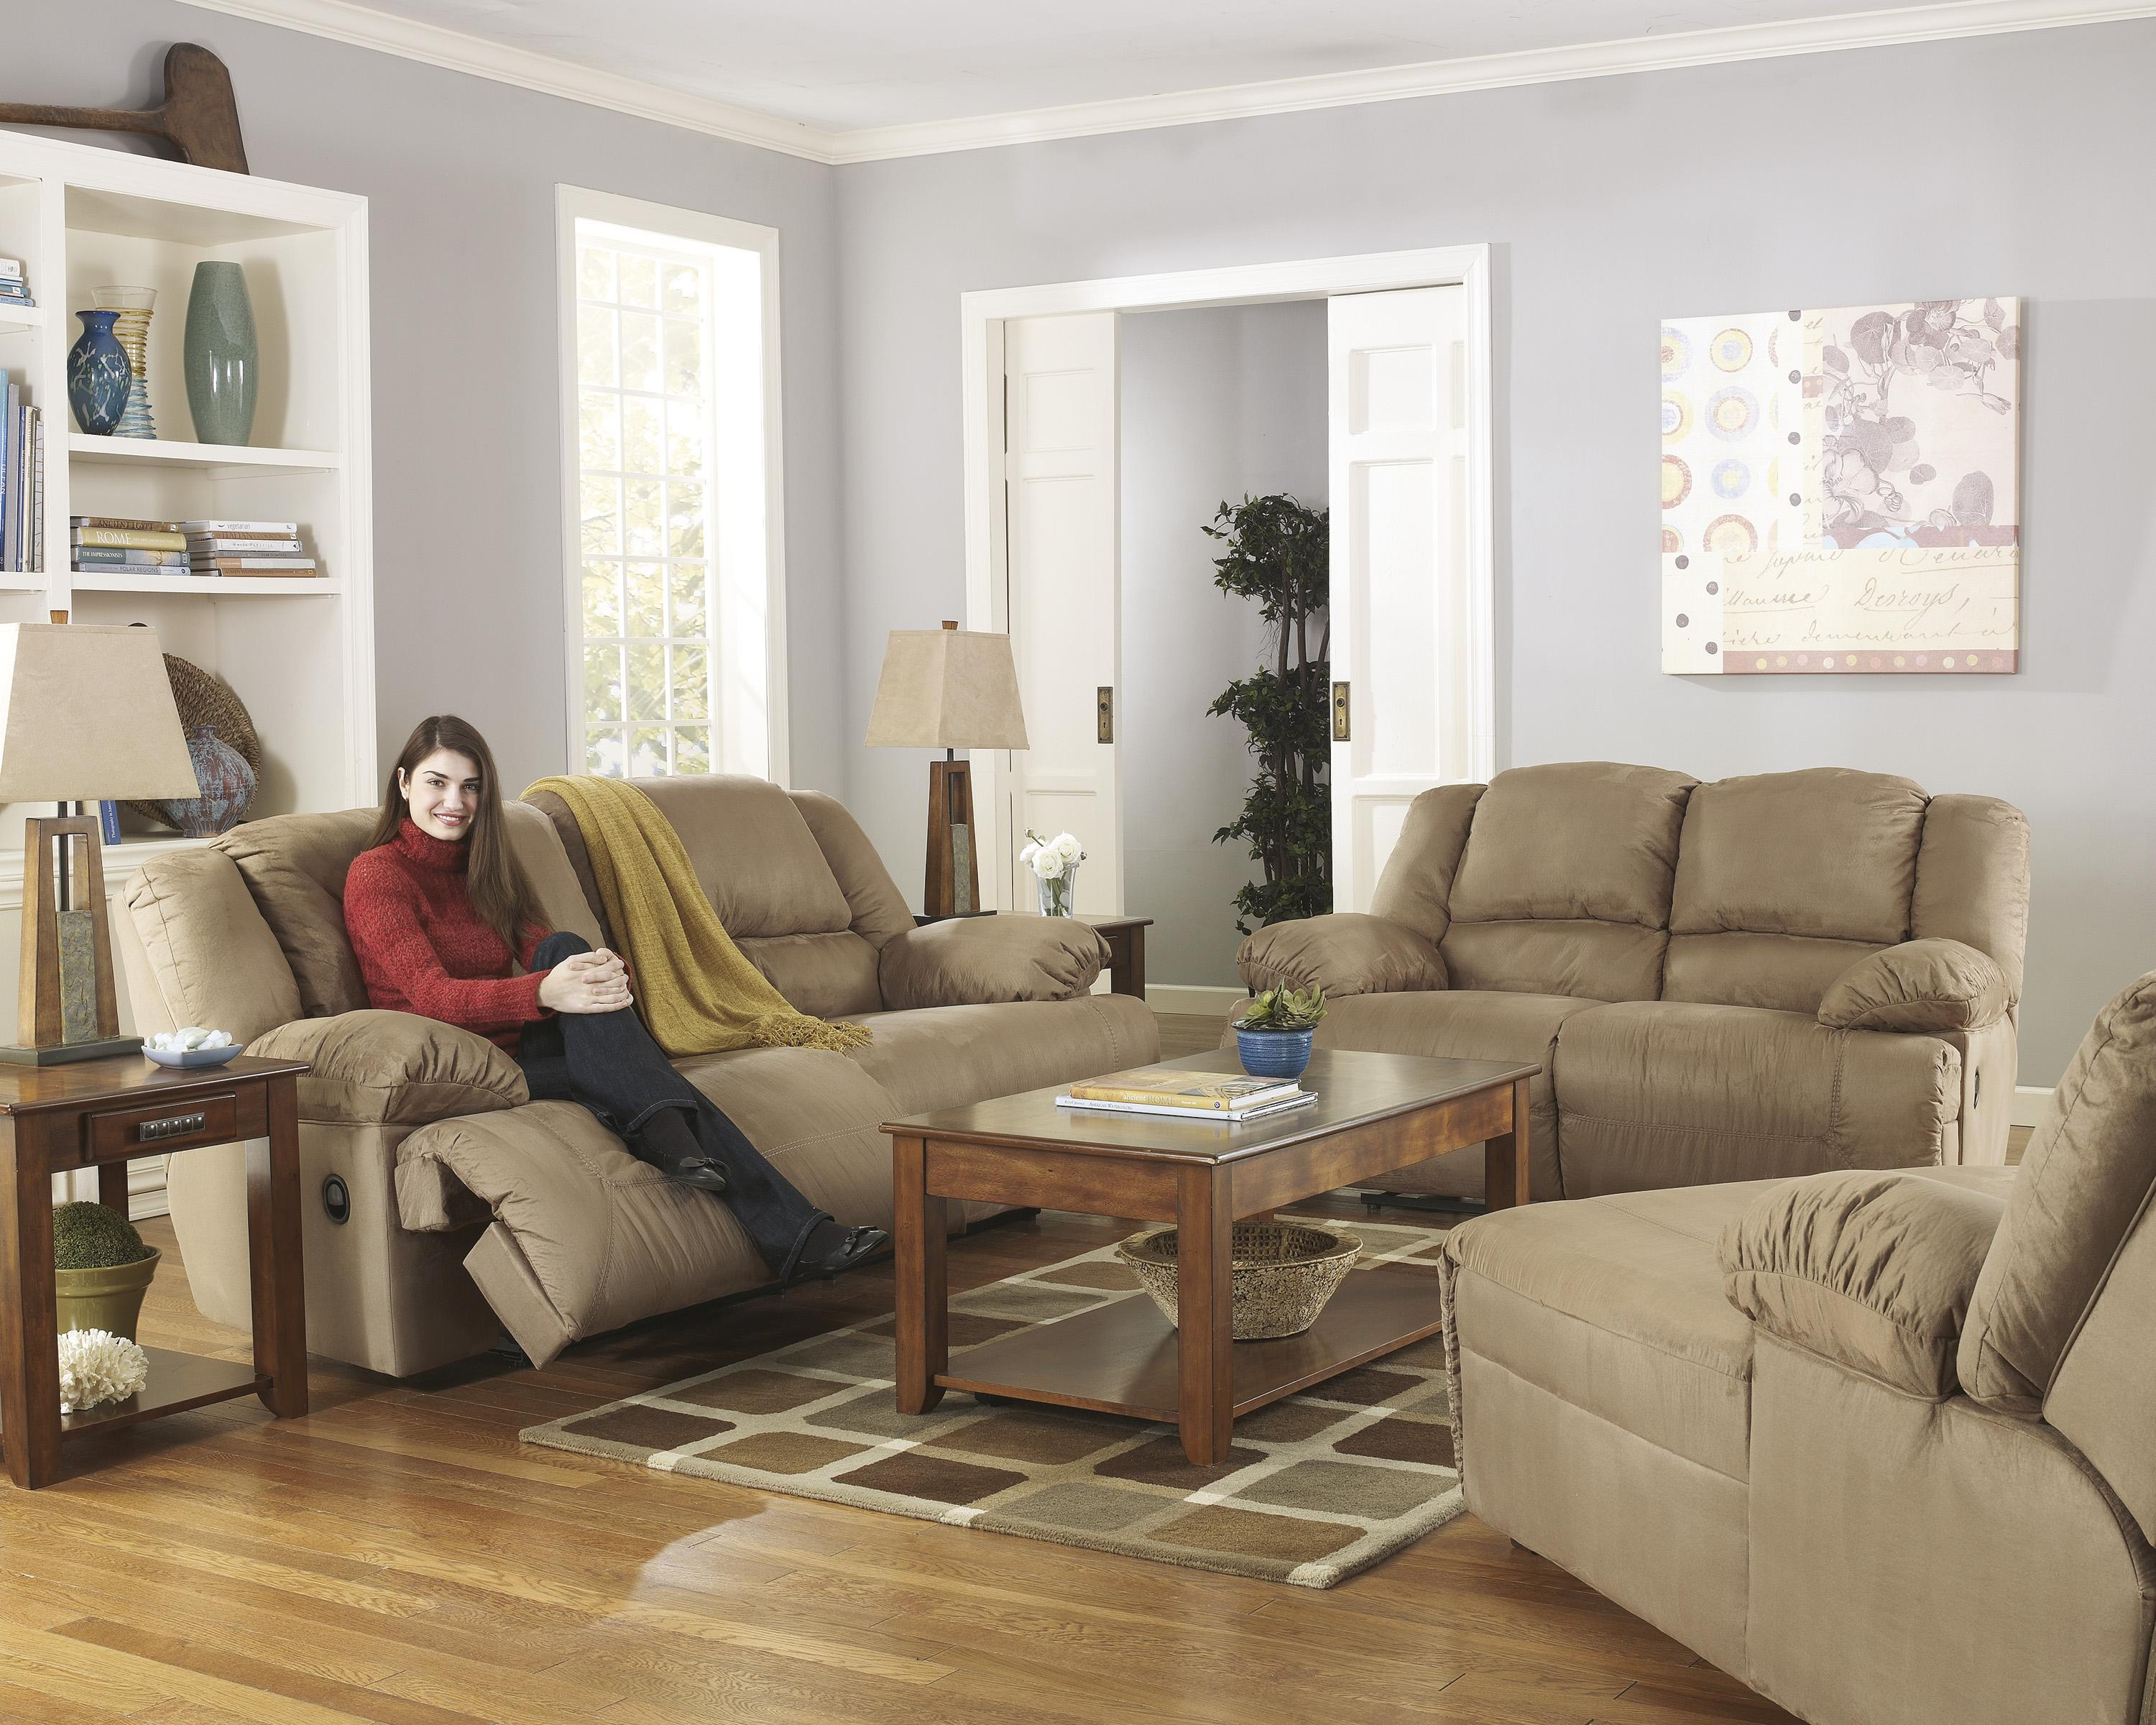 Signature Design by Ashley Hogan - Mocha Reclining Living Room Group - Item Number: 57802 Living Room Group 3